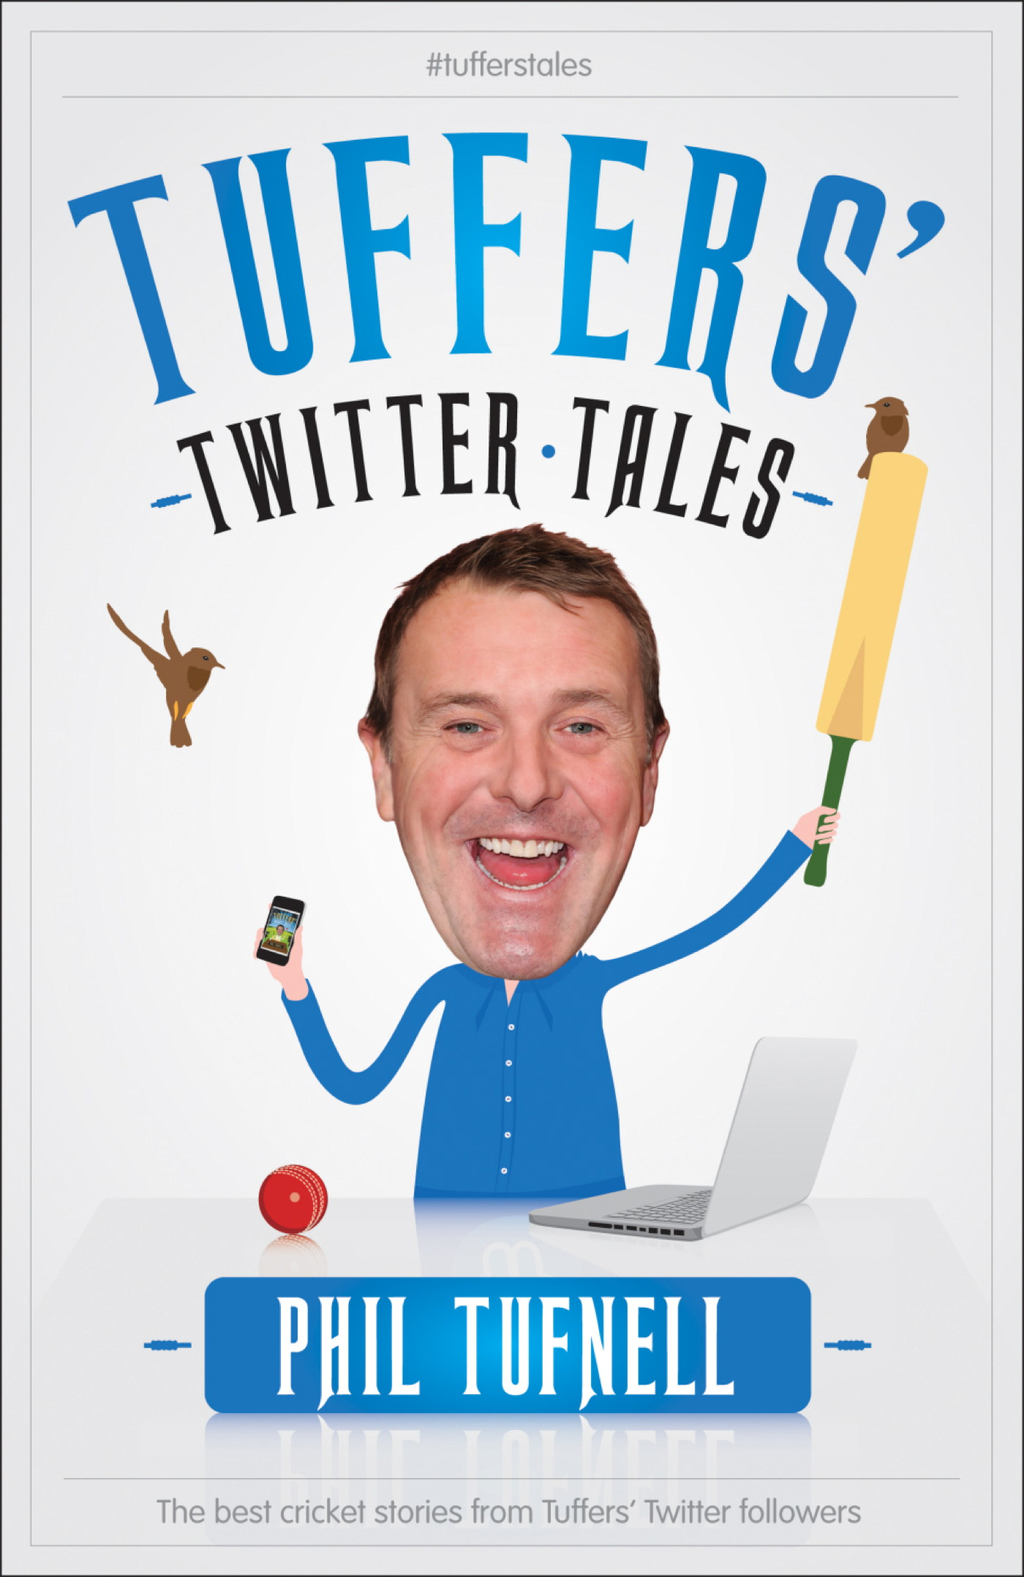 Tuffers' Twitter Tales: The Best Cricket Stories From Tuffers' Twitter Followers